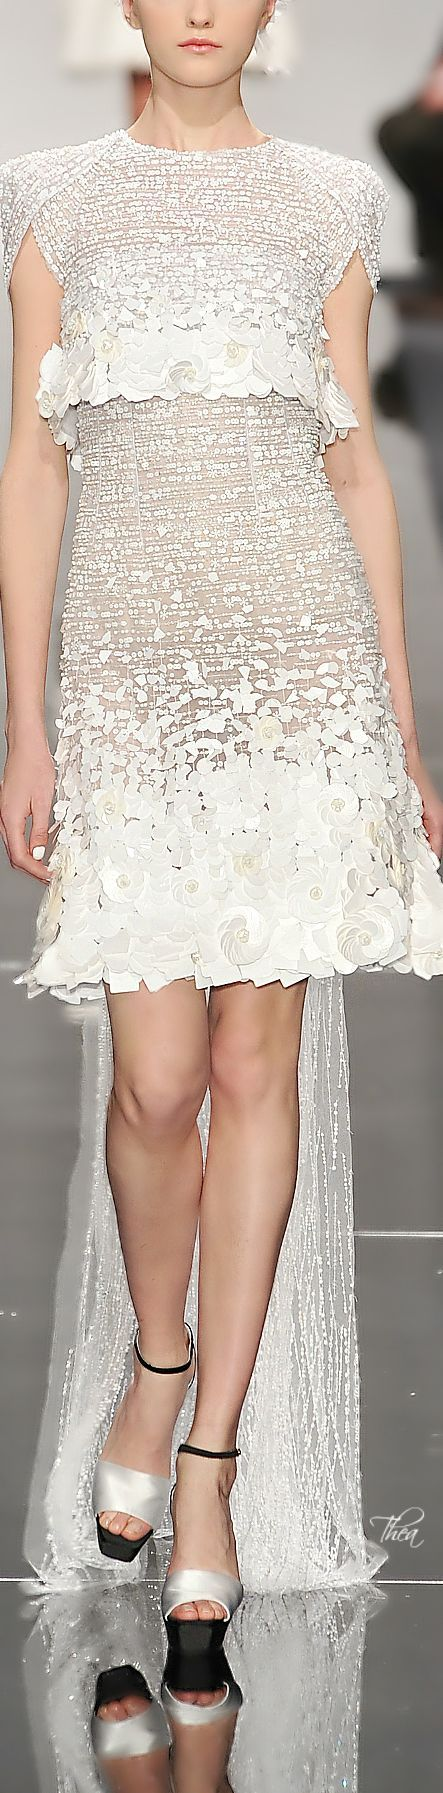 Chanel ● Haute Couture - Curated by www.PartiesPearlsAndBeingPrecious.com